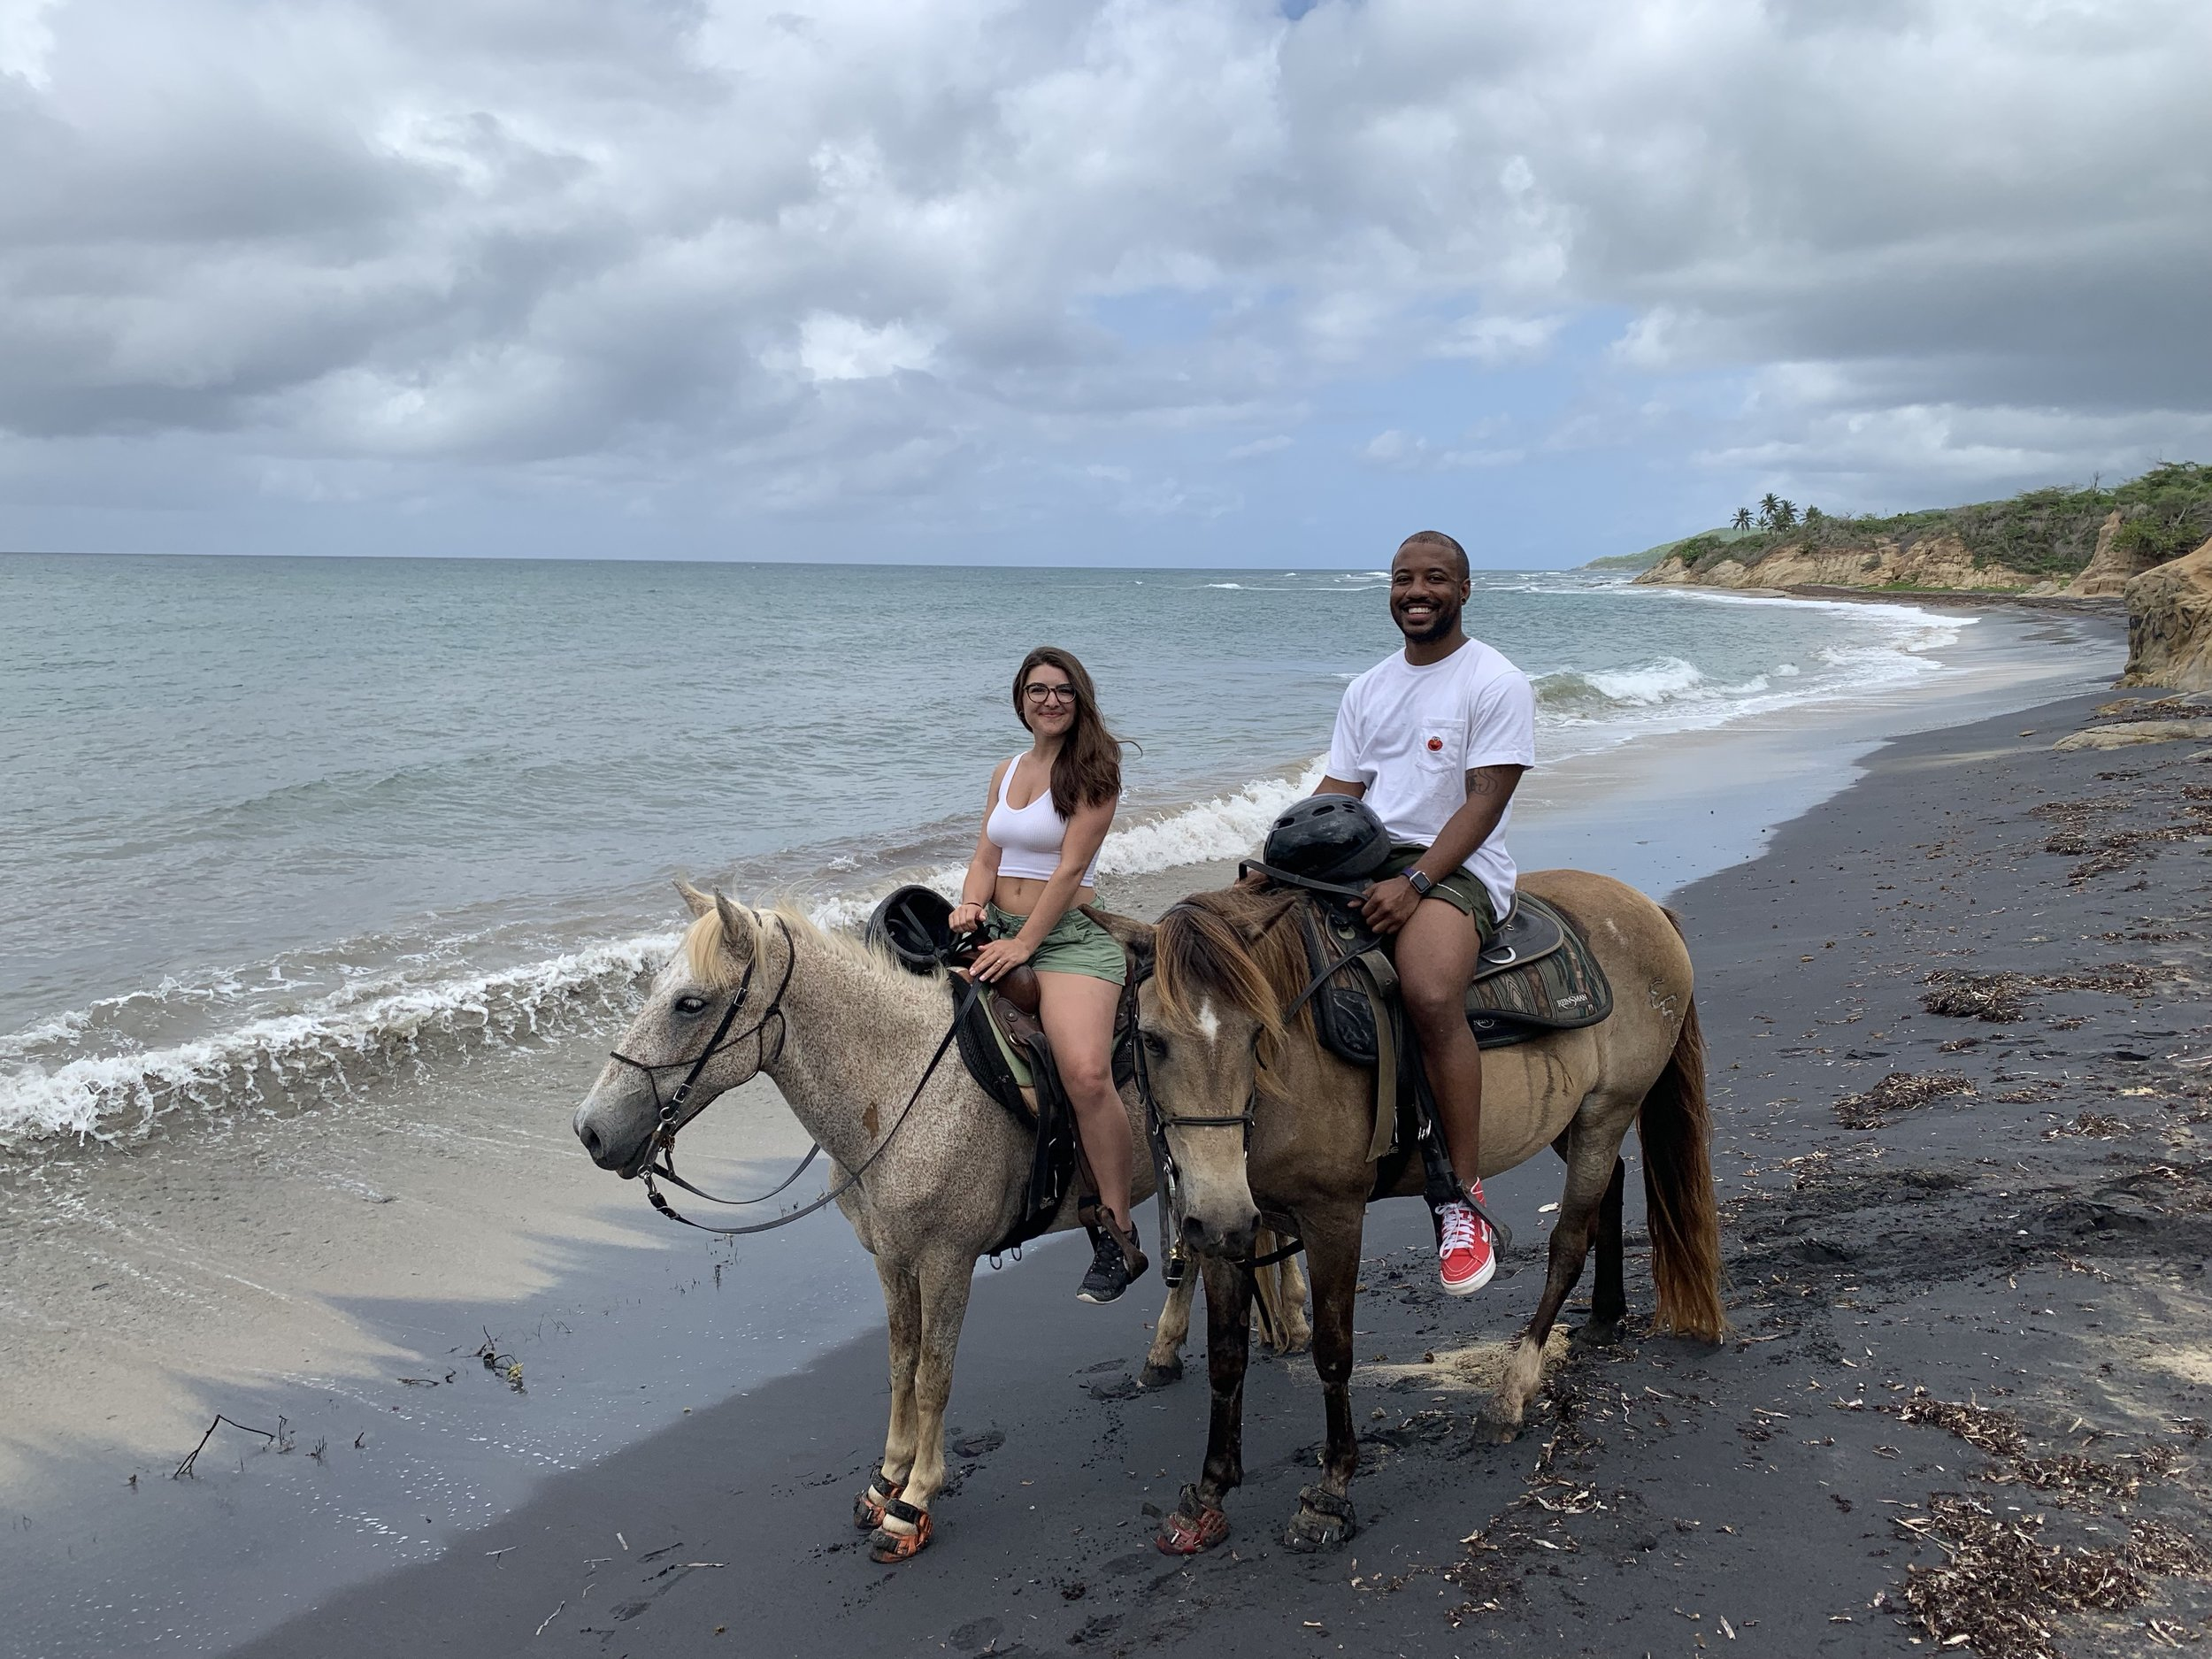 One of the coolest parts about Vieques is that horses roam free all over the island. We went horseback riding with  Esperanza Riding Company  which was an amazing way to see Vieques.